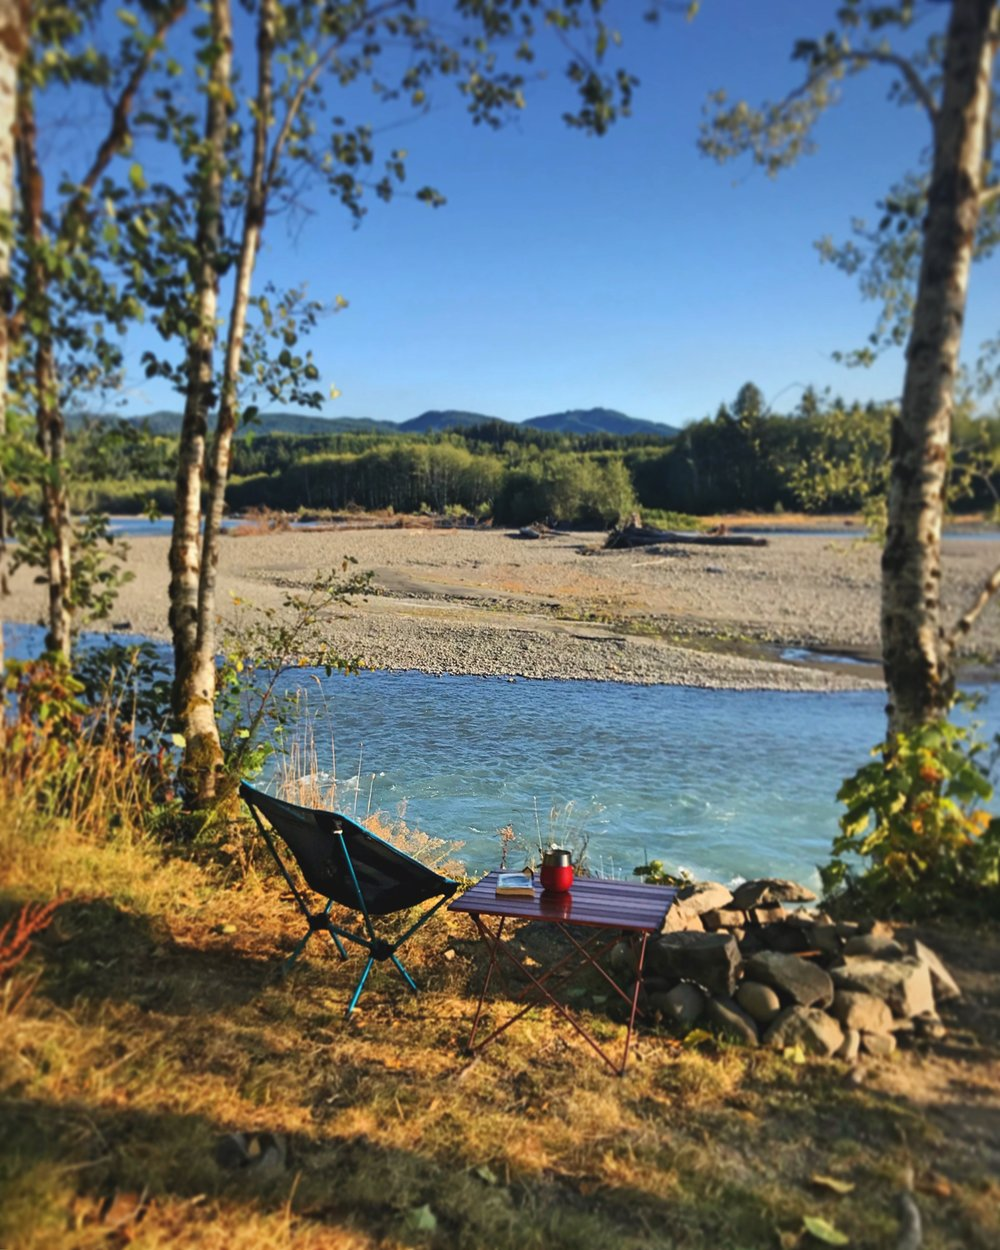 Using our Helinox chair and our Trekology table by the Hoh River in Washington.